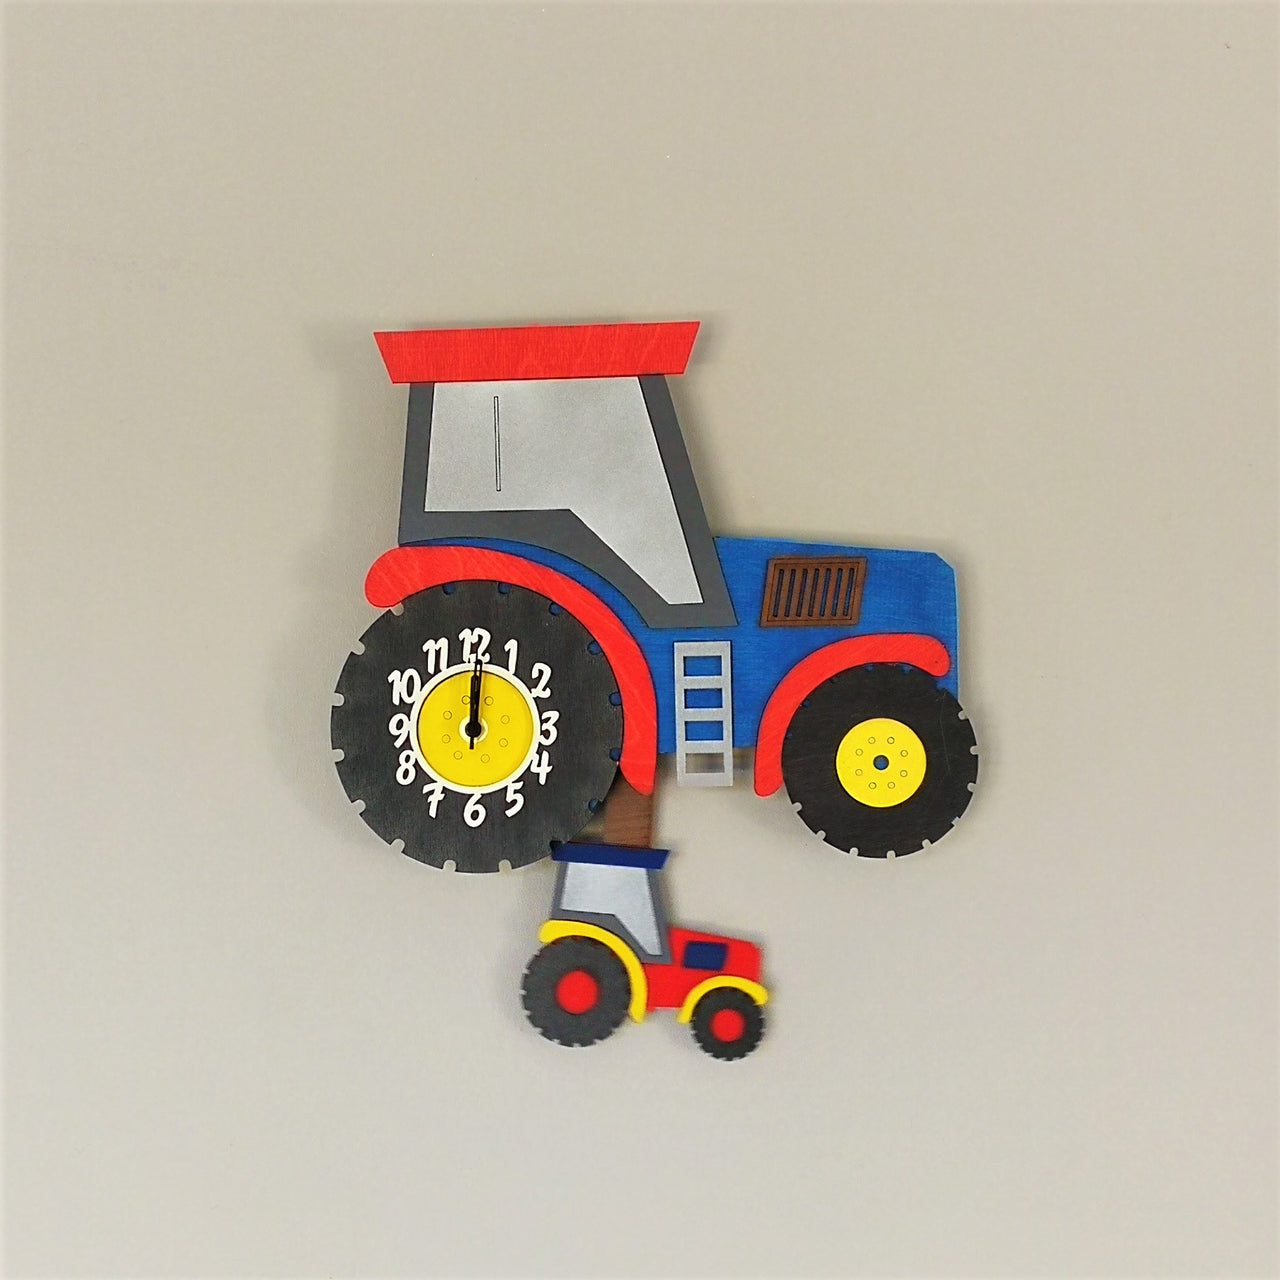 This blue tractor clock springs to life with a moving red mini-tractor as a pendulum. The clock face itself is on the big tractor wheel.